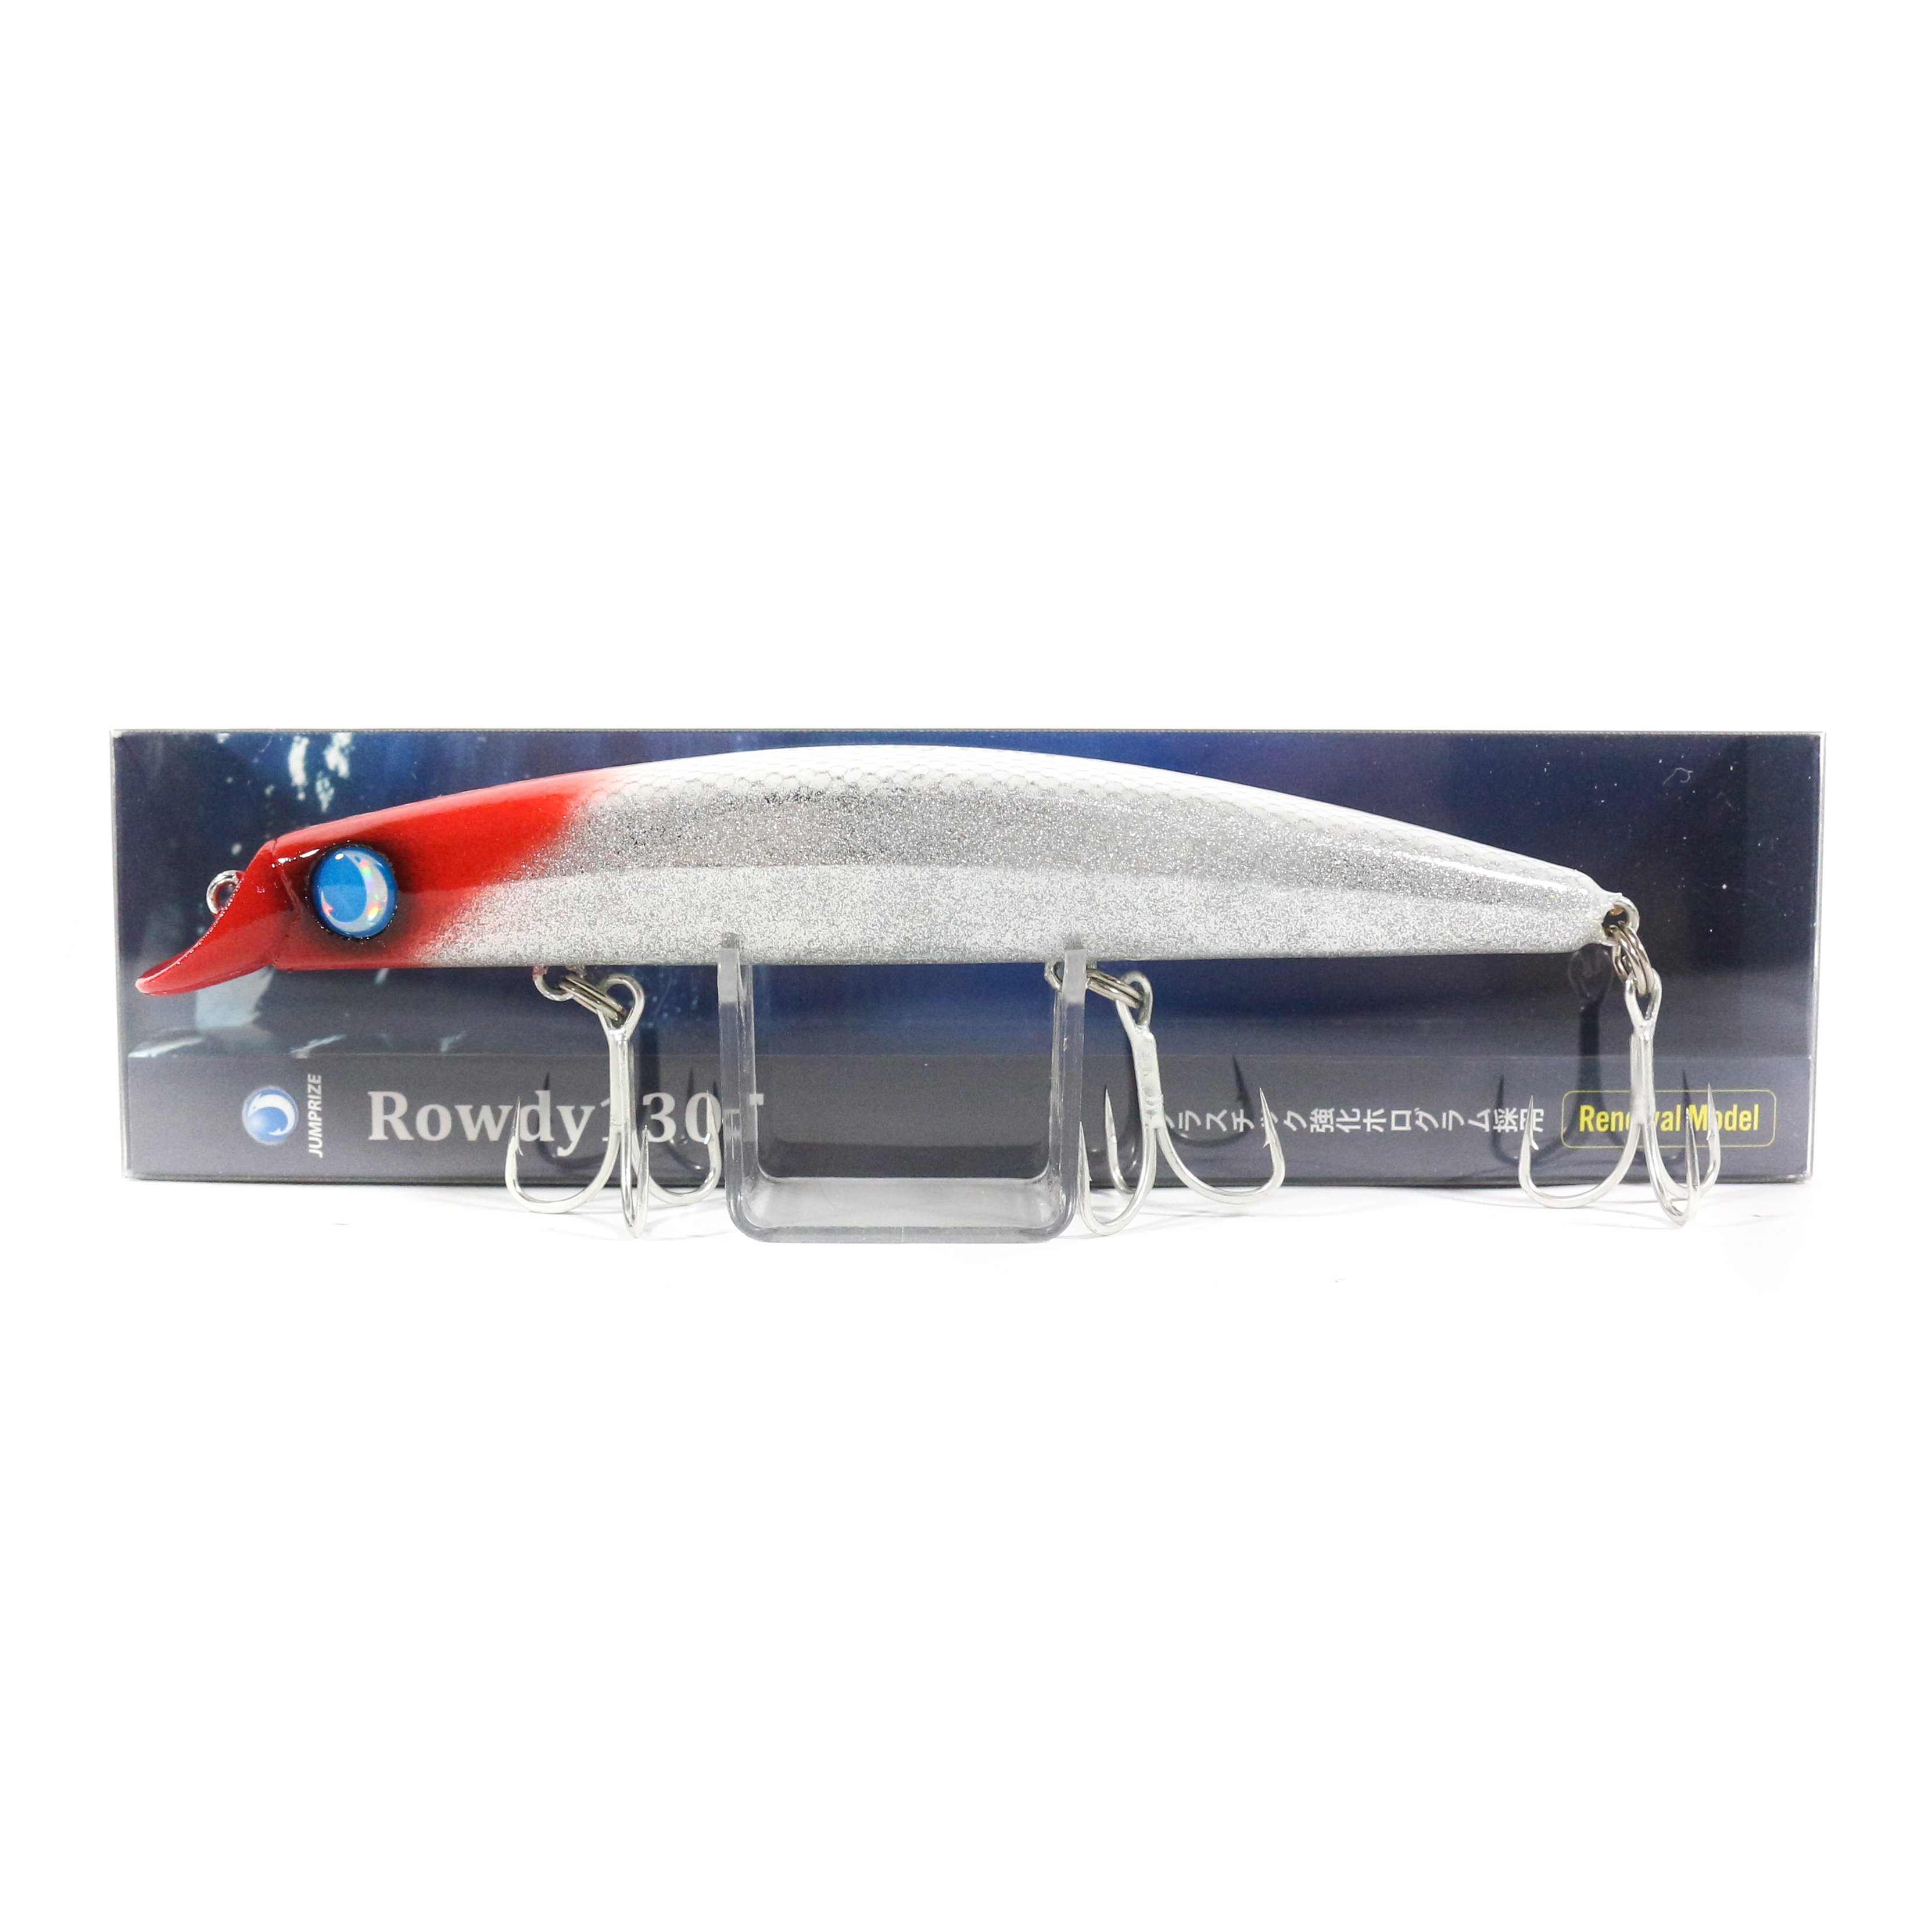 Sale Jumprize Rowdy 130F Floating Lure 111 (1669)